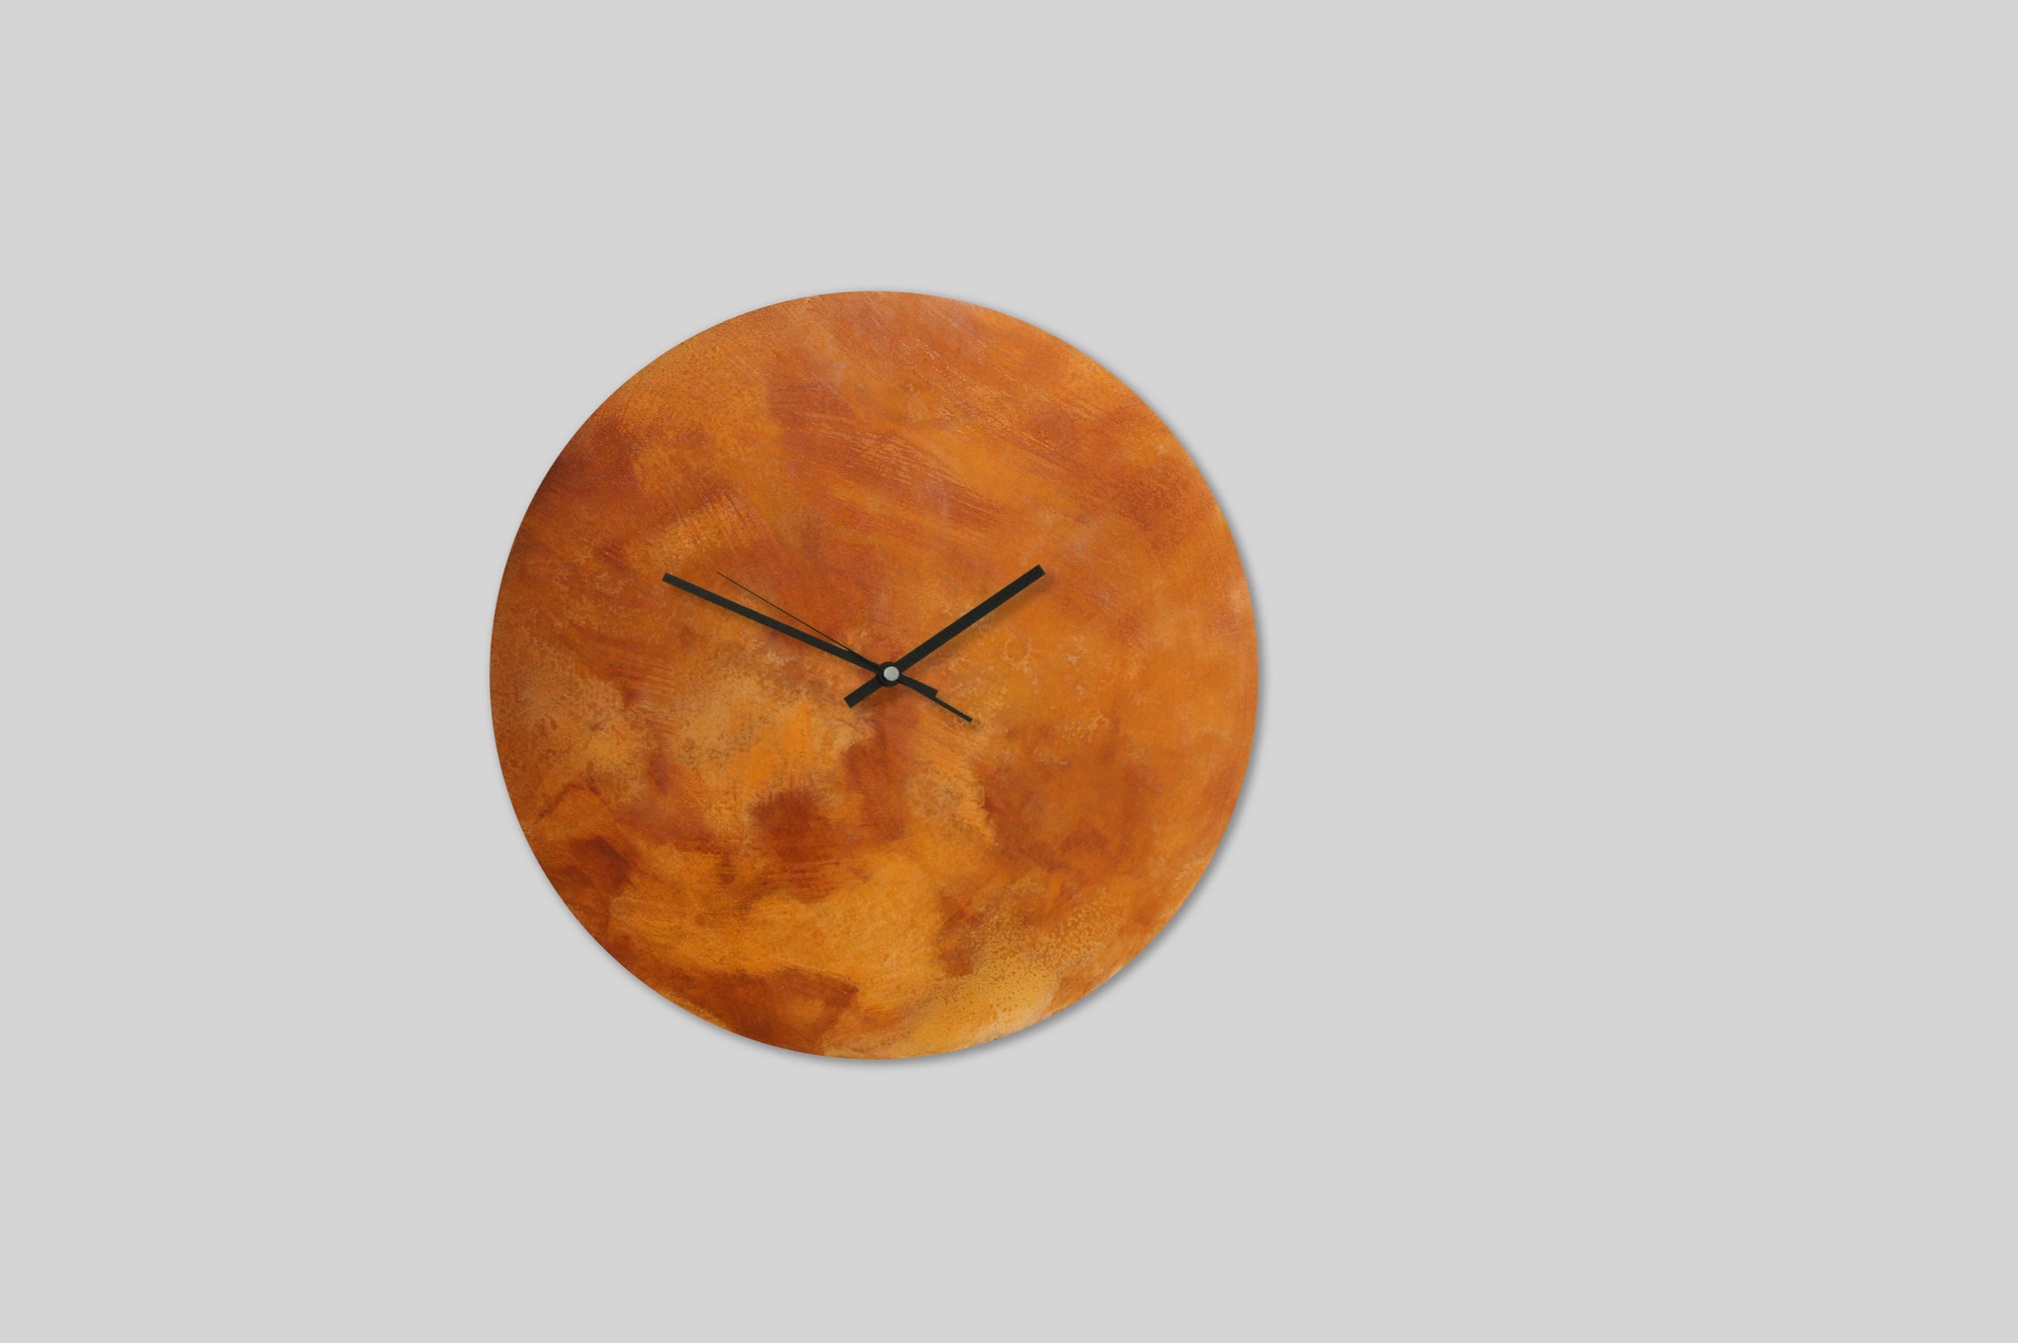 New In - Corten Steel Wall Clocks are made from a specially coated and then rusted and lacquered steel. Every clock has a distinctive look and is unique.